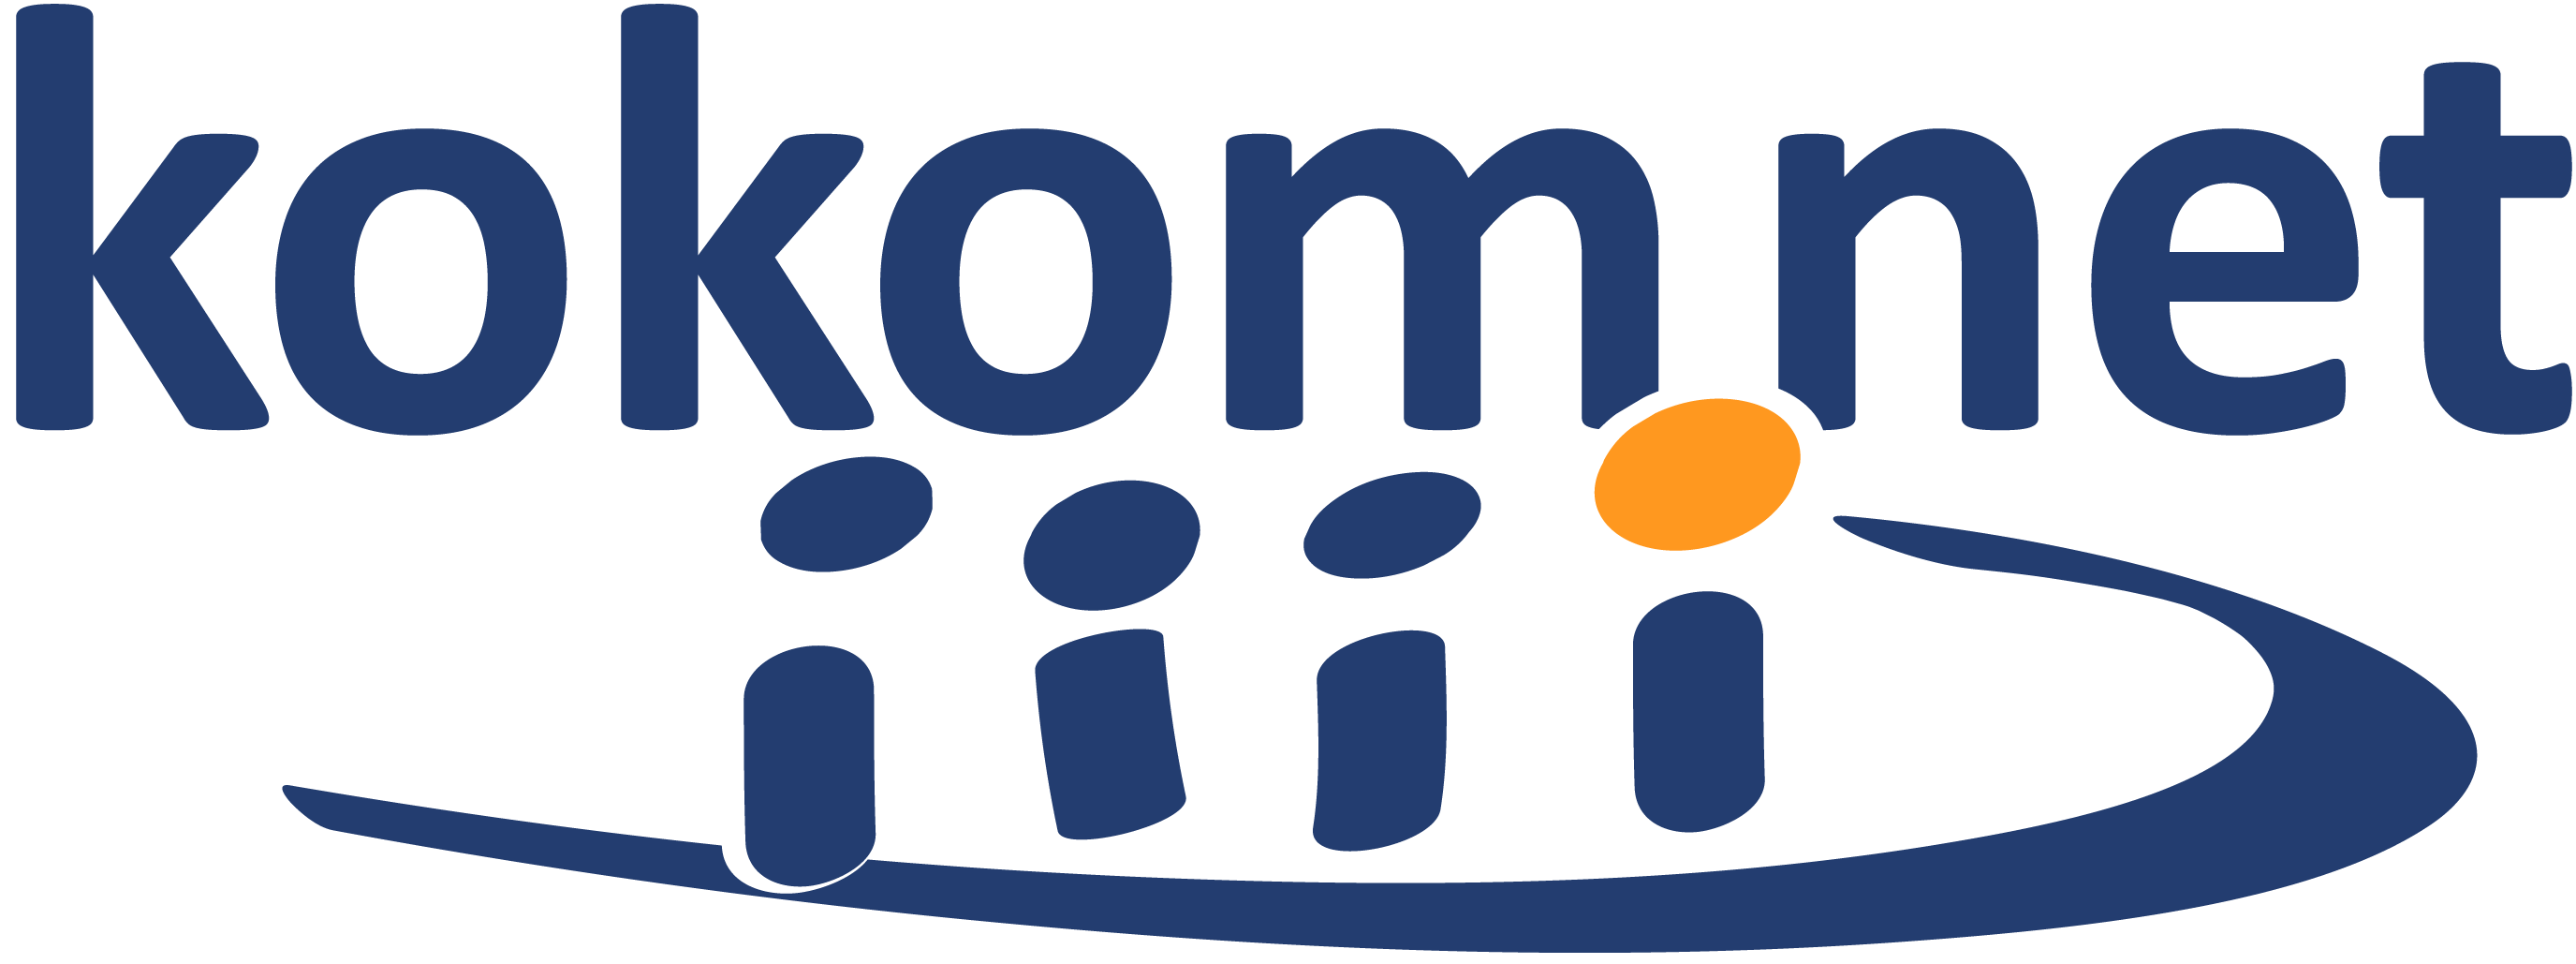 kokom.net-log